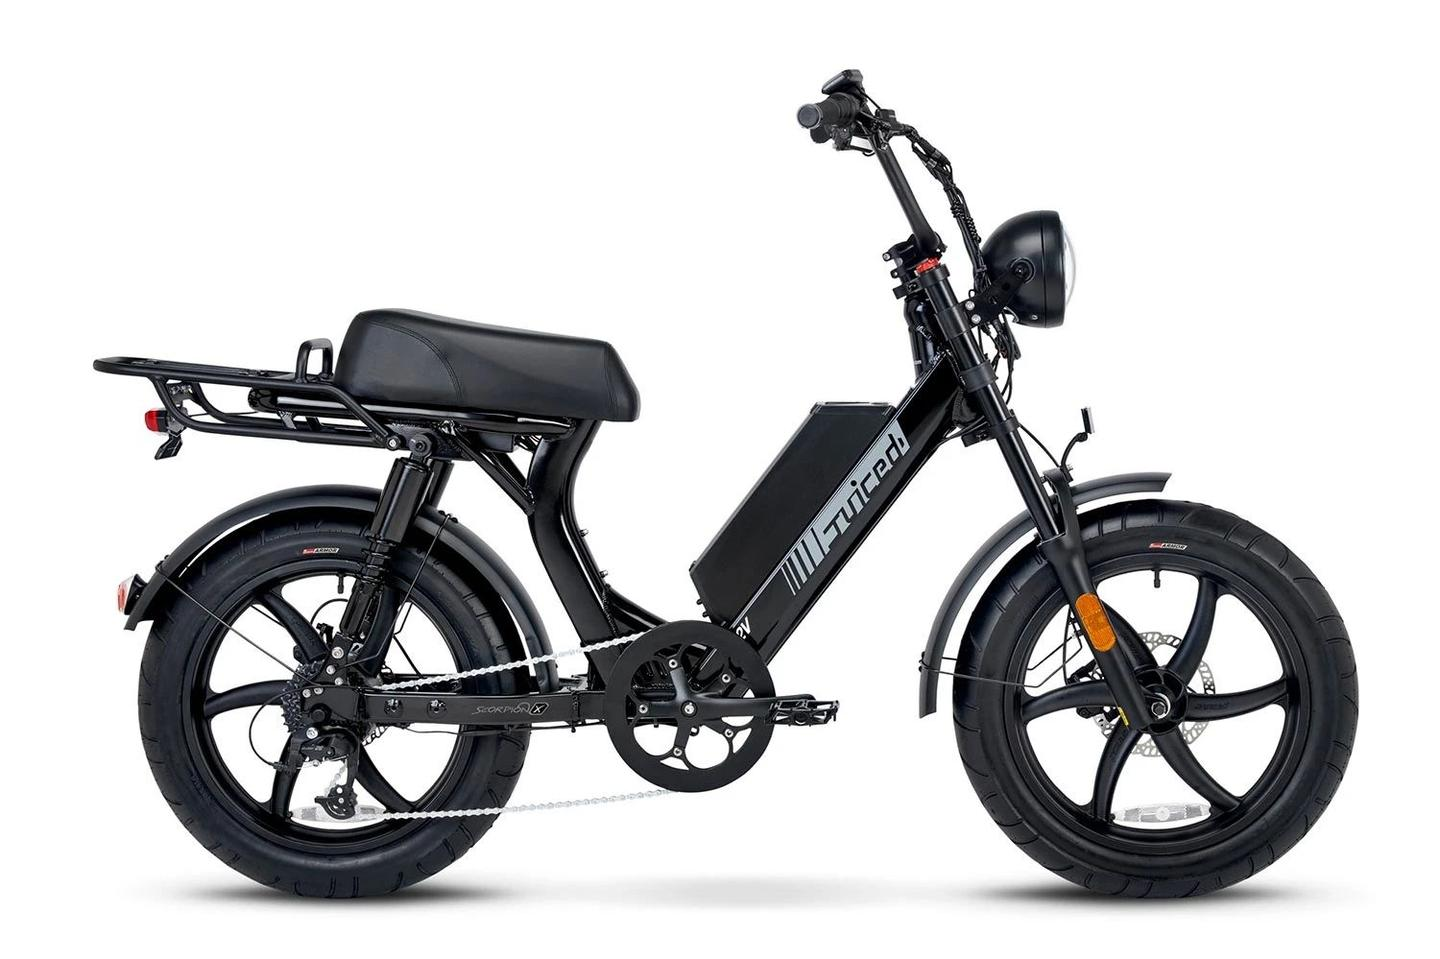 Available in black or blue, the Scorpion X has a payload limit of 275 lb